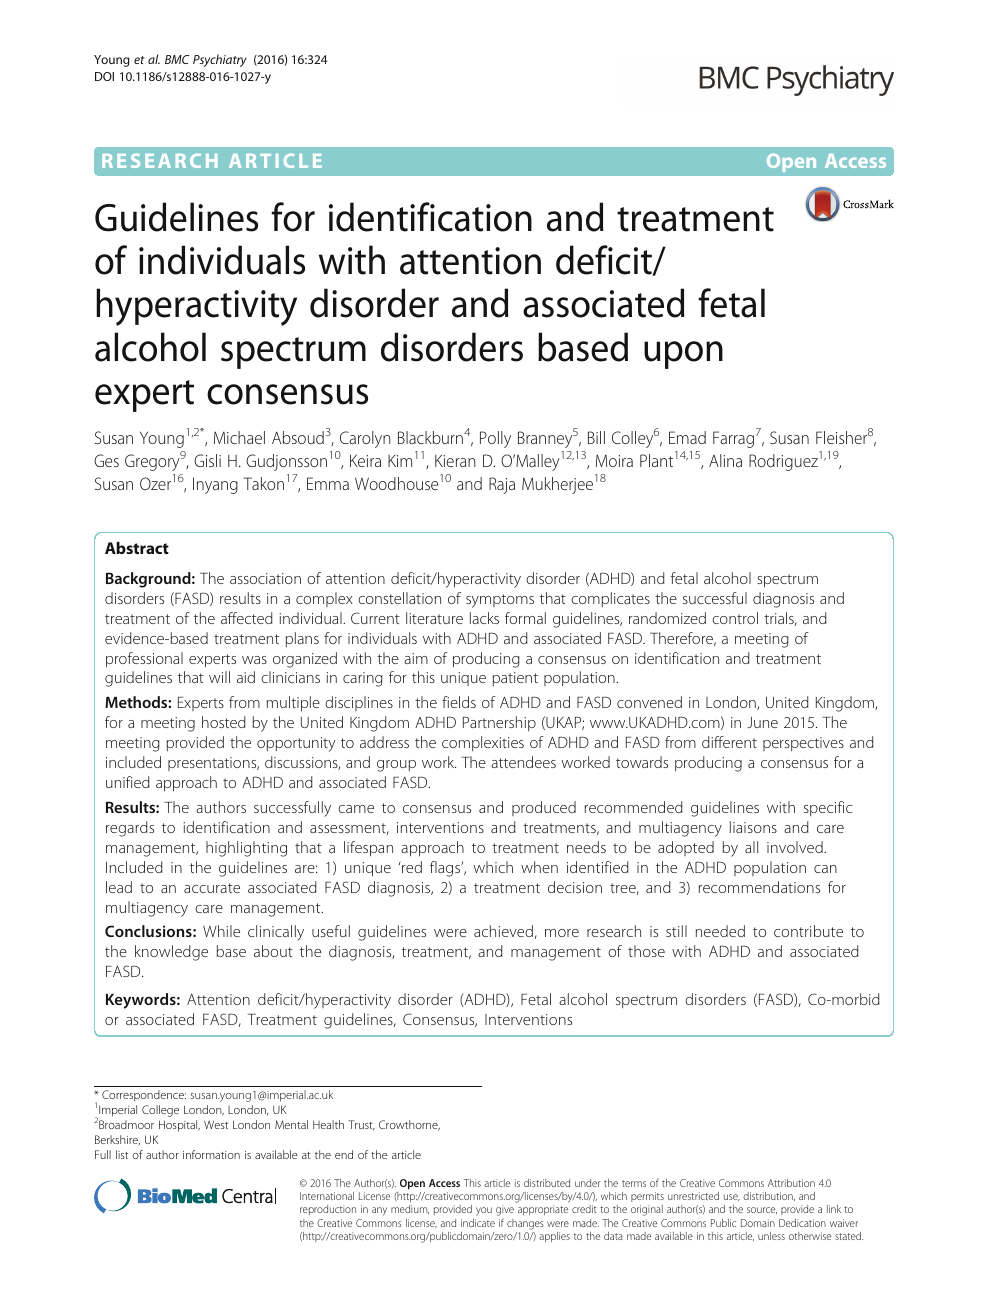 Guidelines for identification and treatment of individuals